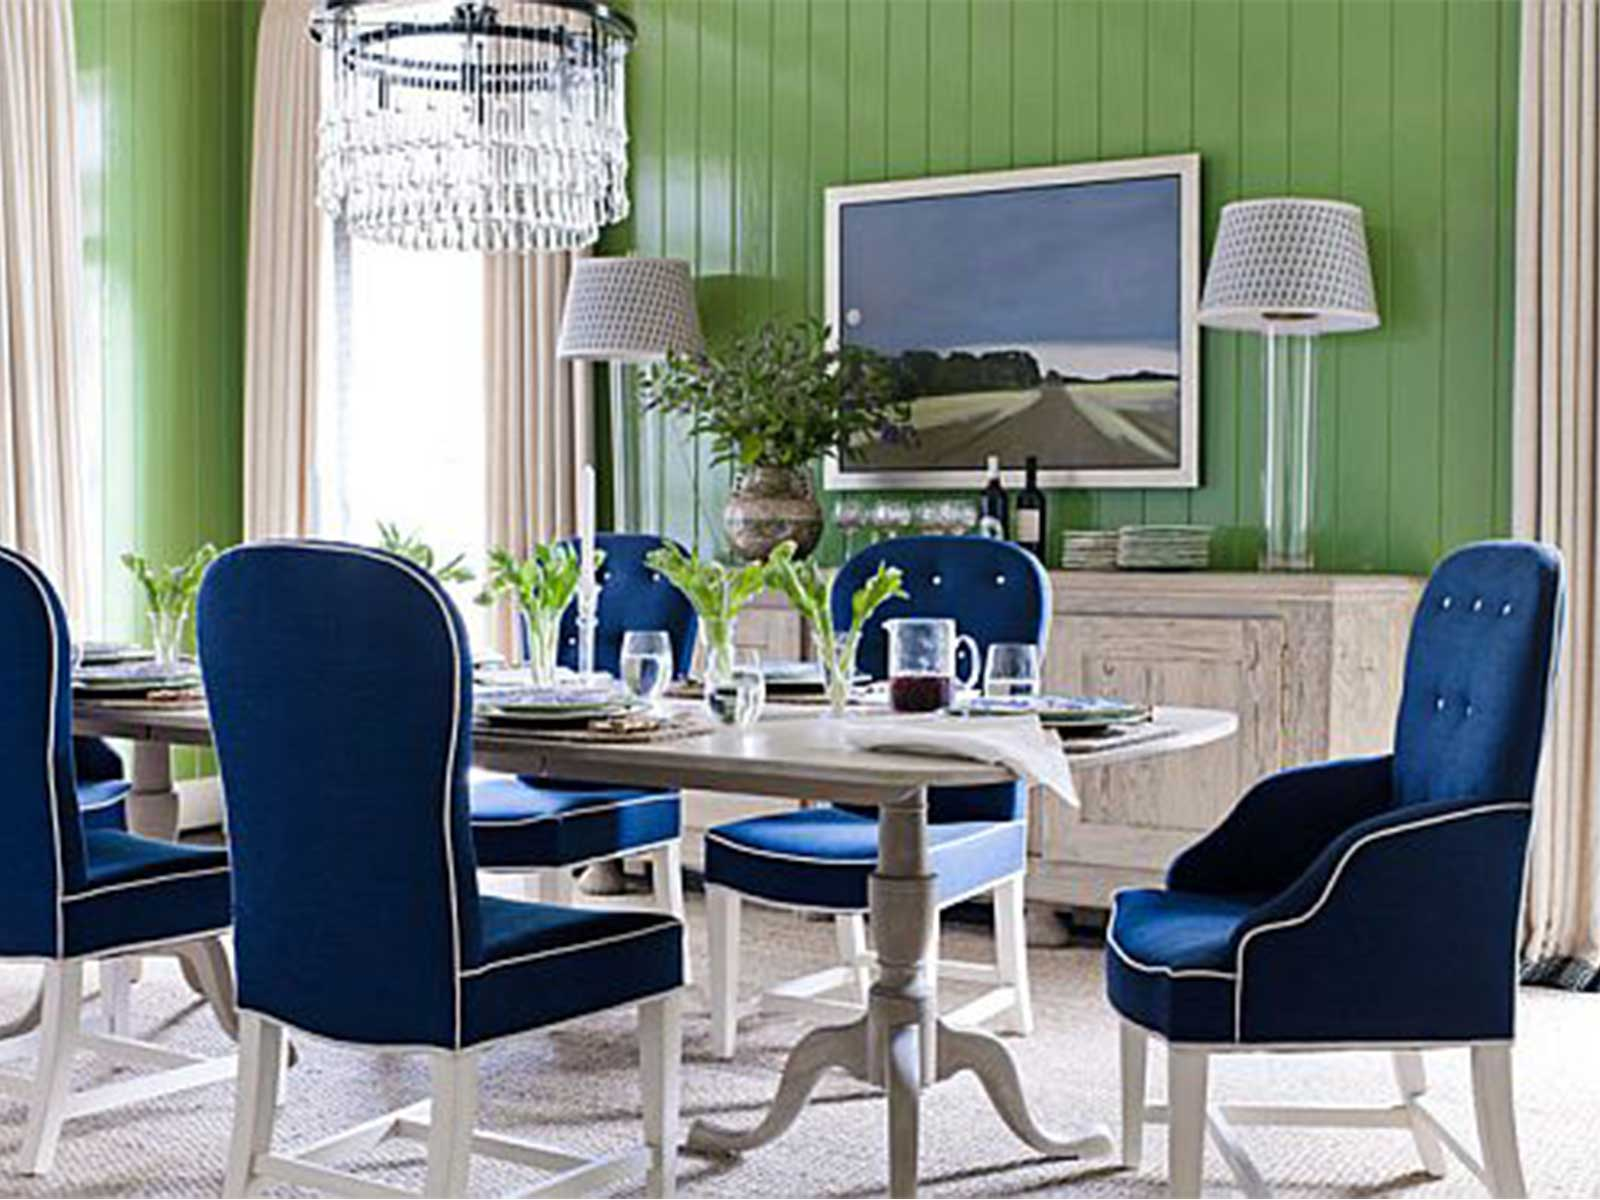 Upholstered Chairs Dining Room download upholstered dining room set gen4congresscom Amazing Dining Room With Blue Upholstered Chairs Long Table White Chandelier Cabinet Standing Lamp In Green